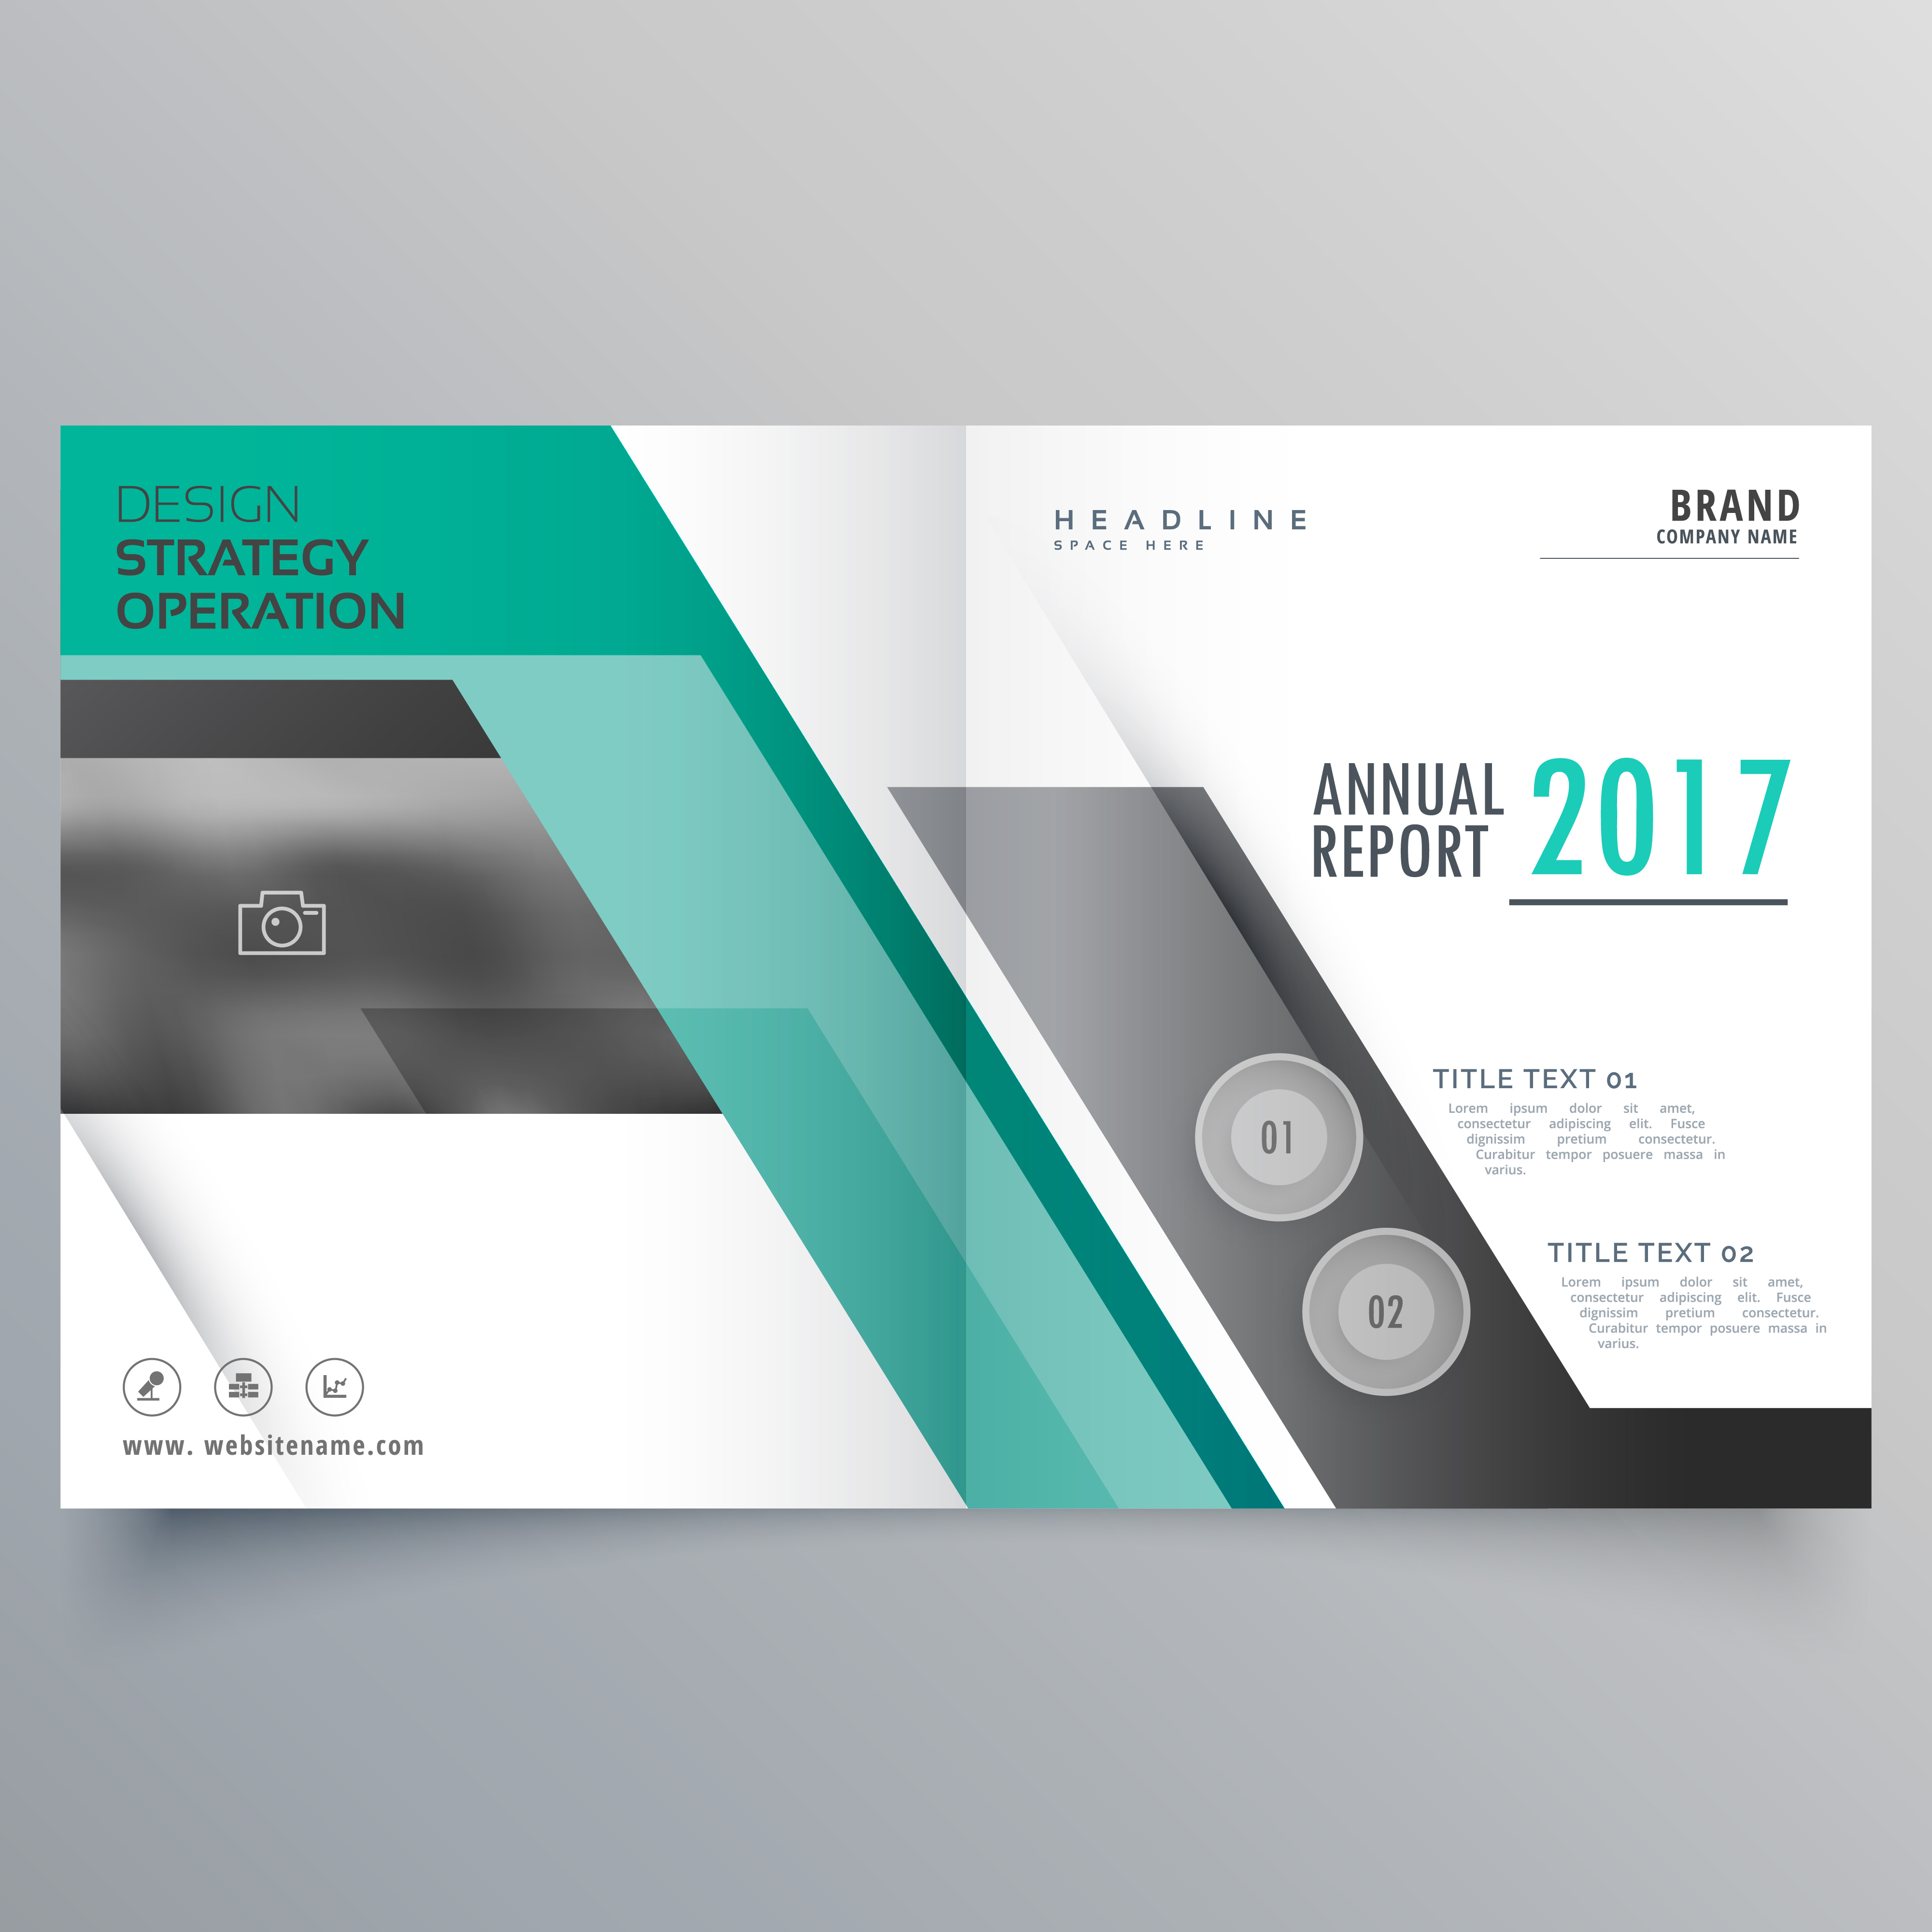 Stylish Bifold Magazine Business Brochure Design For Your